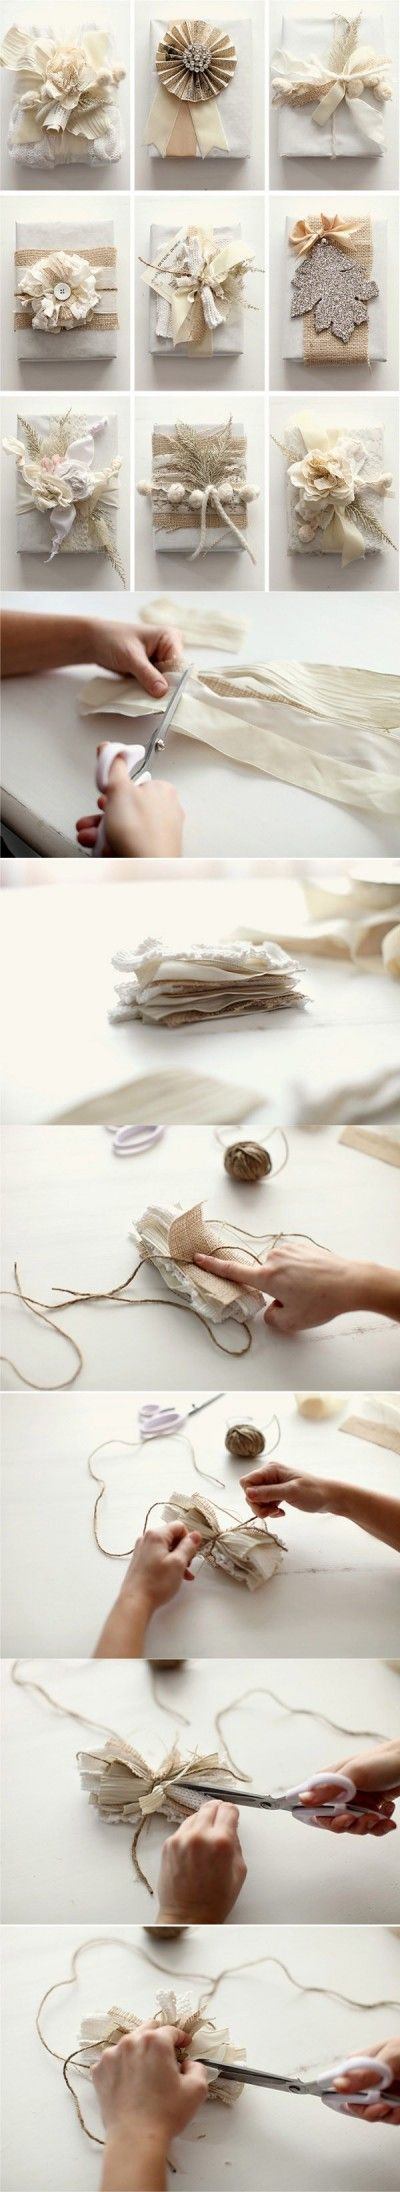 How To Make Cool Gift Package With Recycled Cloth Step By Step Diy Tutorial Instructions / How To Instructions